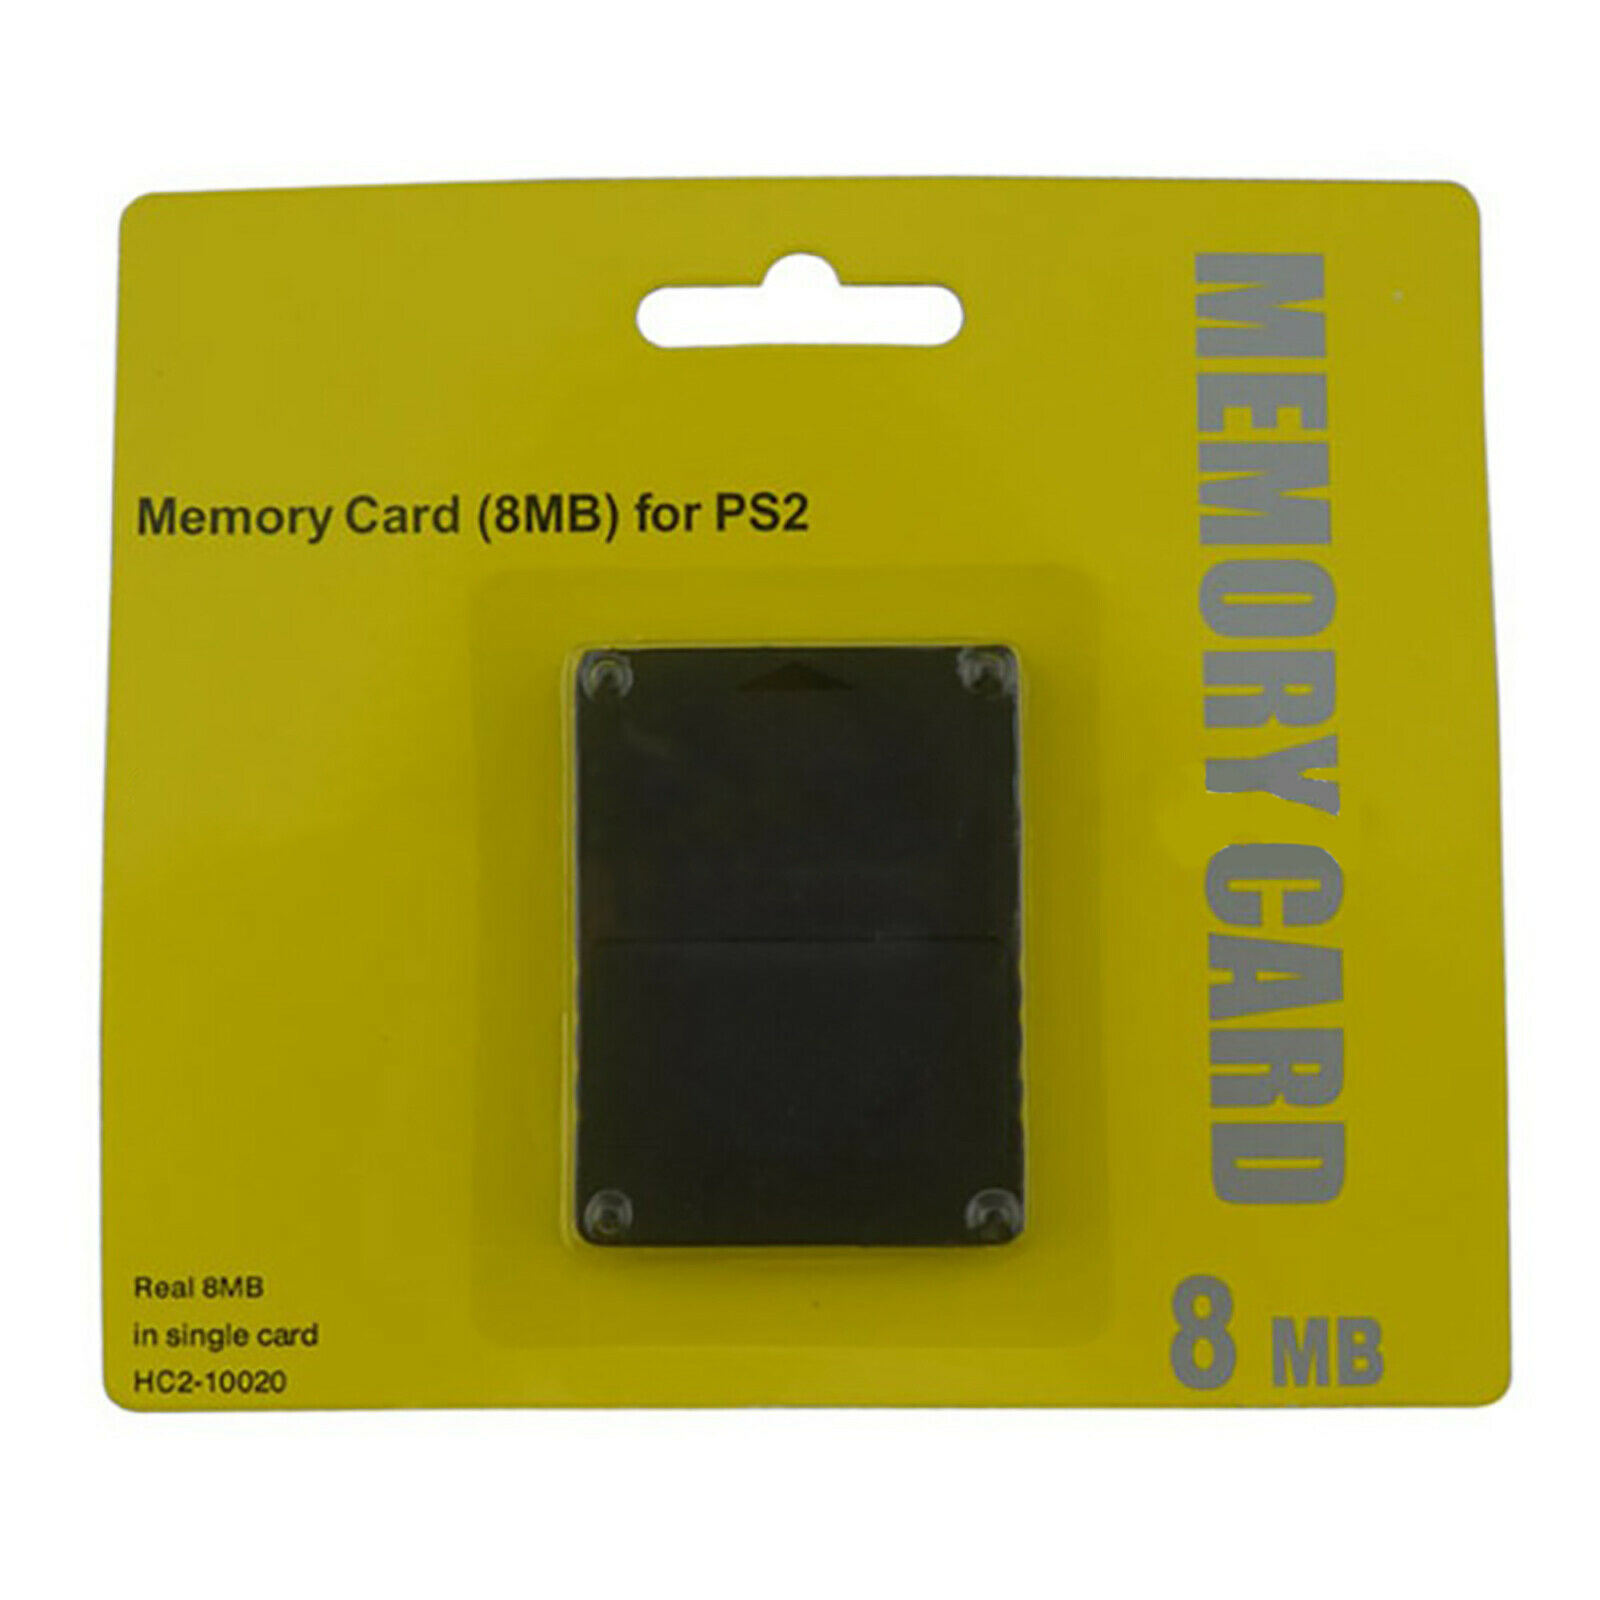 For Sony PlayStation 2 PS2 Game Console 256MB PS2 Memory Card Data Storage Stick